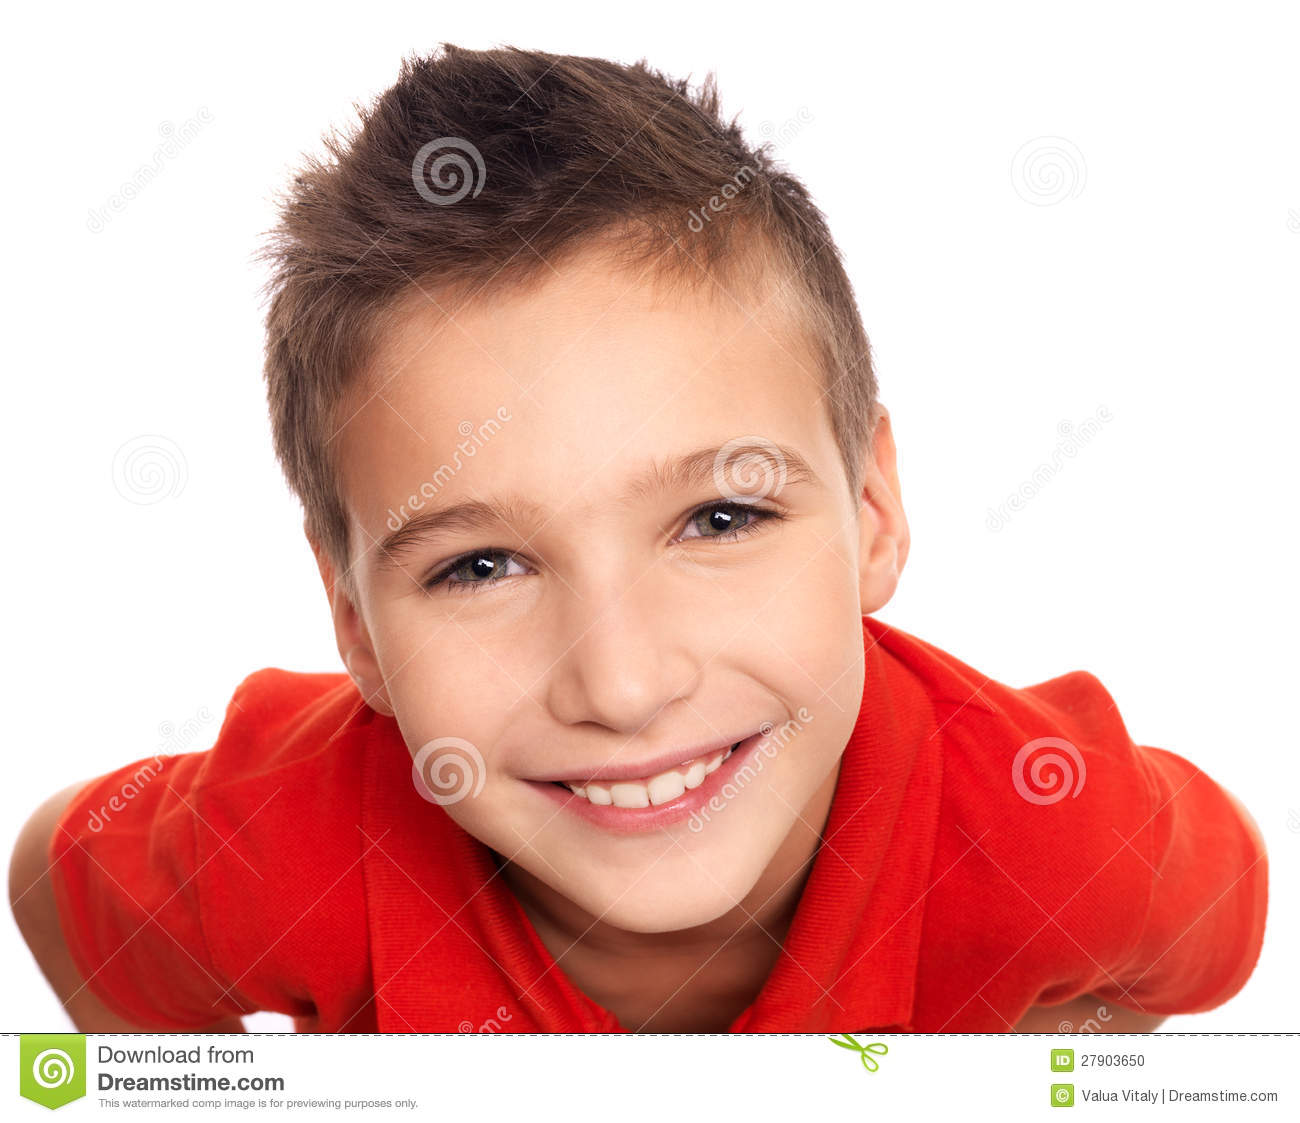 Adorable Young Happy Boy Stock Photo. Image Of Positive